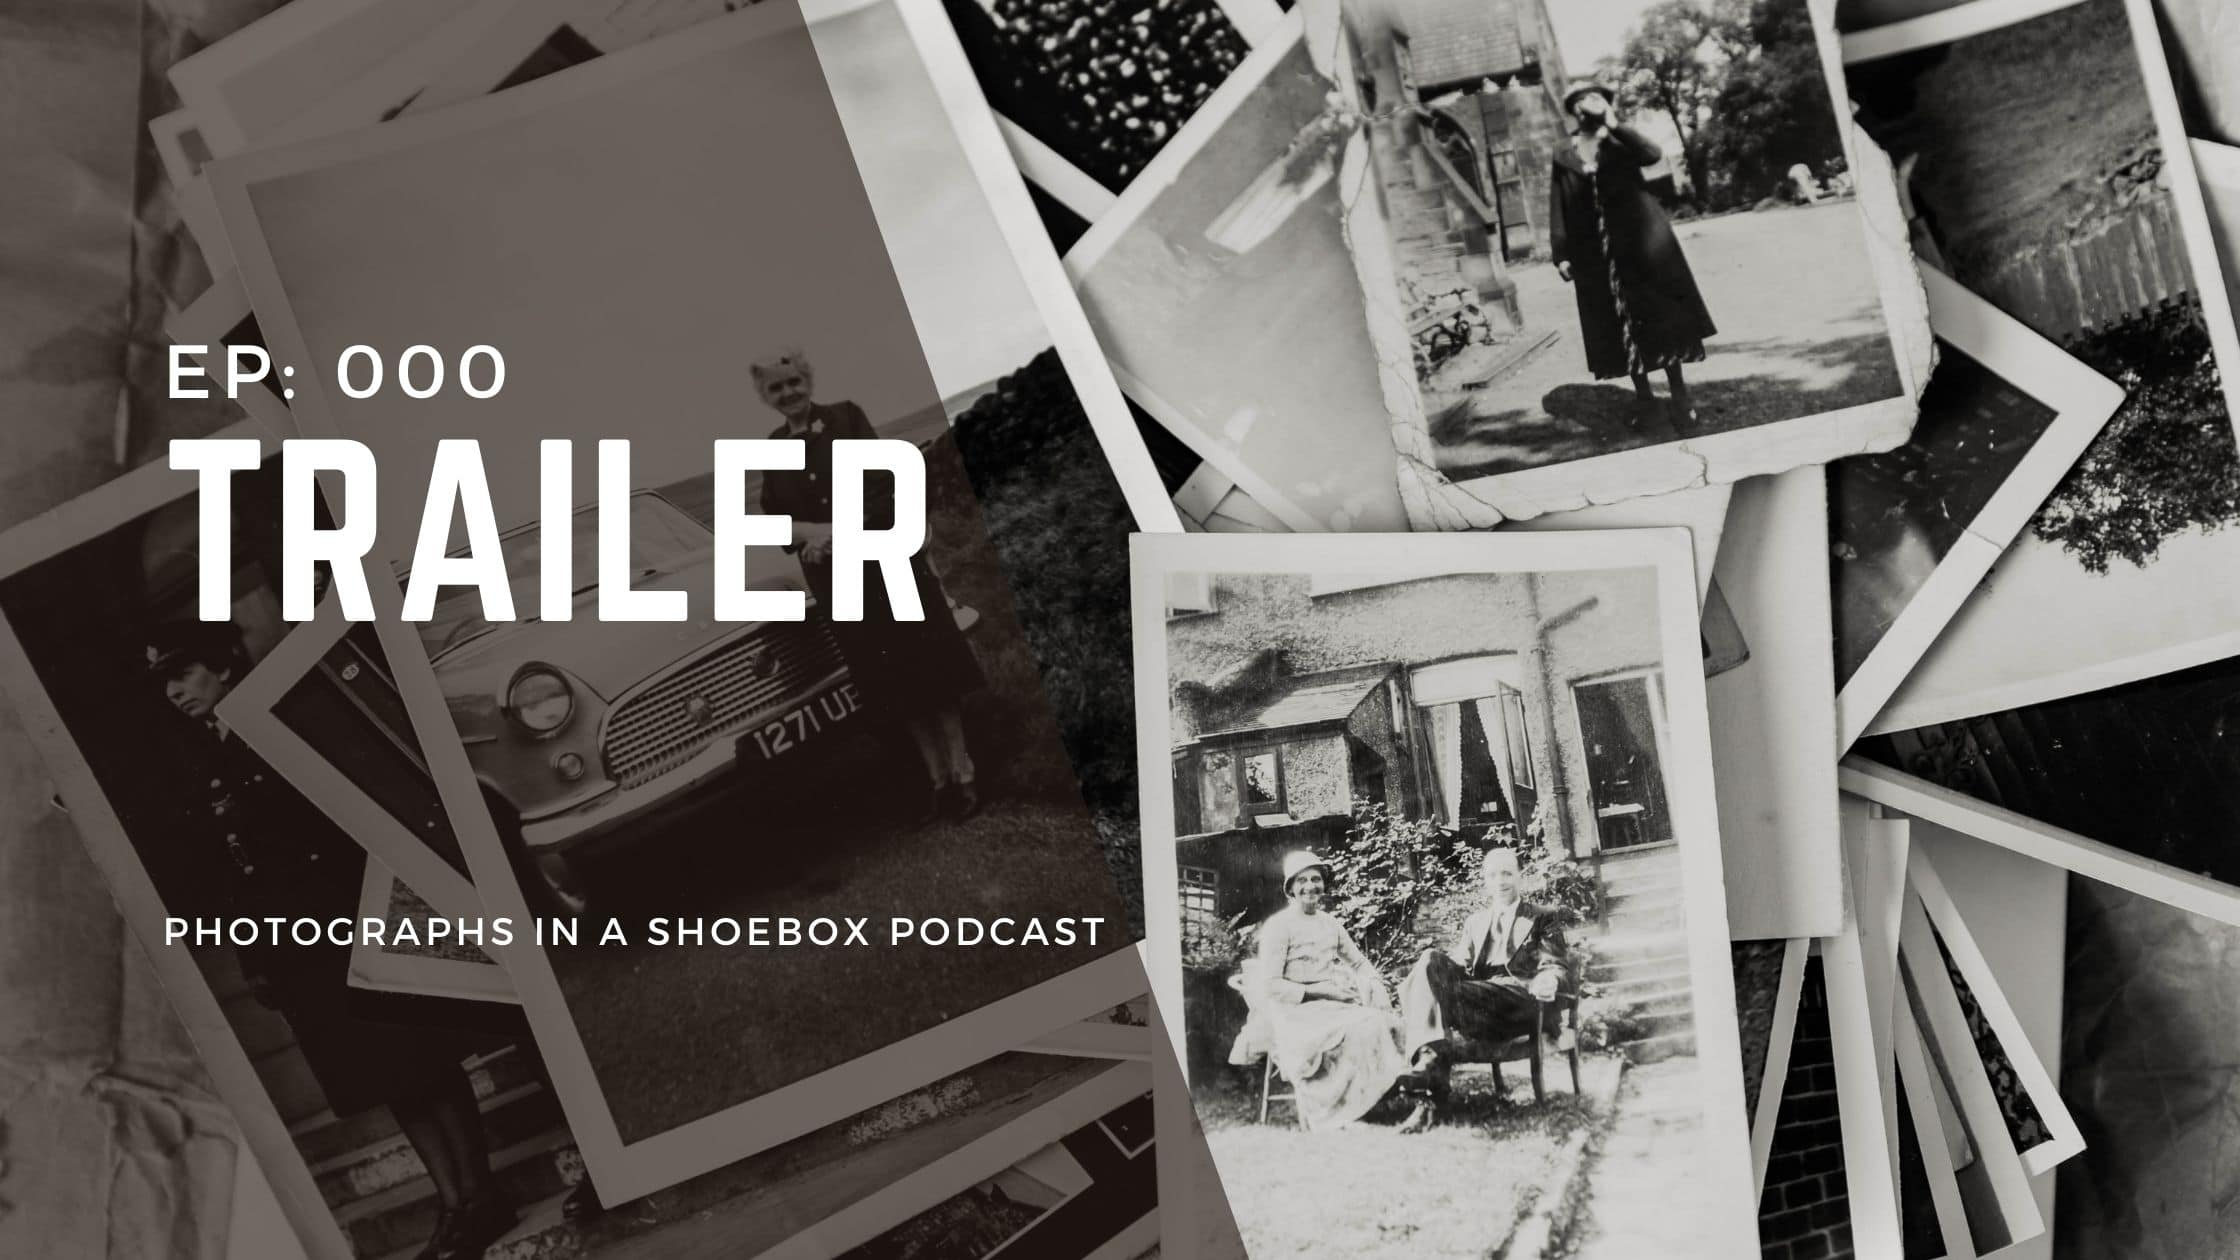 artwork for photographs in a shoebox podcast trailer